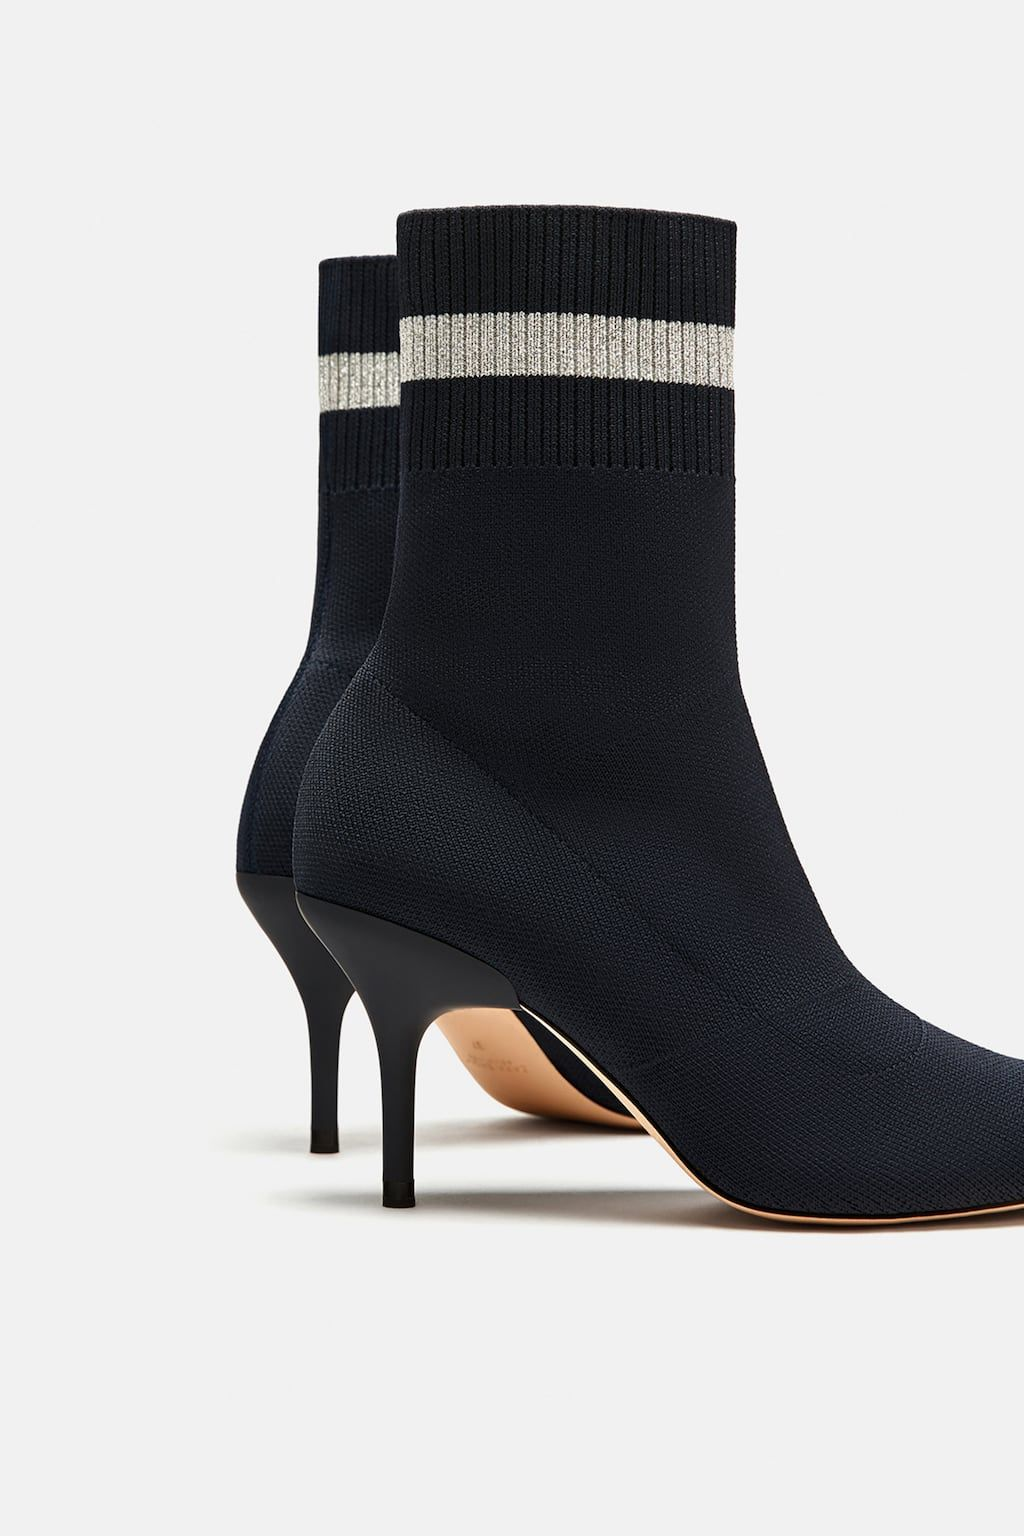 30fd2d9d8 Image 4 of HIGH-HEELED SOCK-STYLE ANKLE BOOTS WITH STRIPED DETAIL from Zara